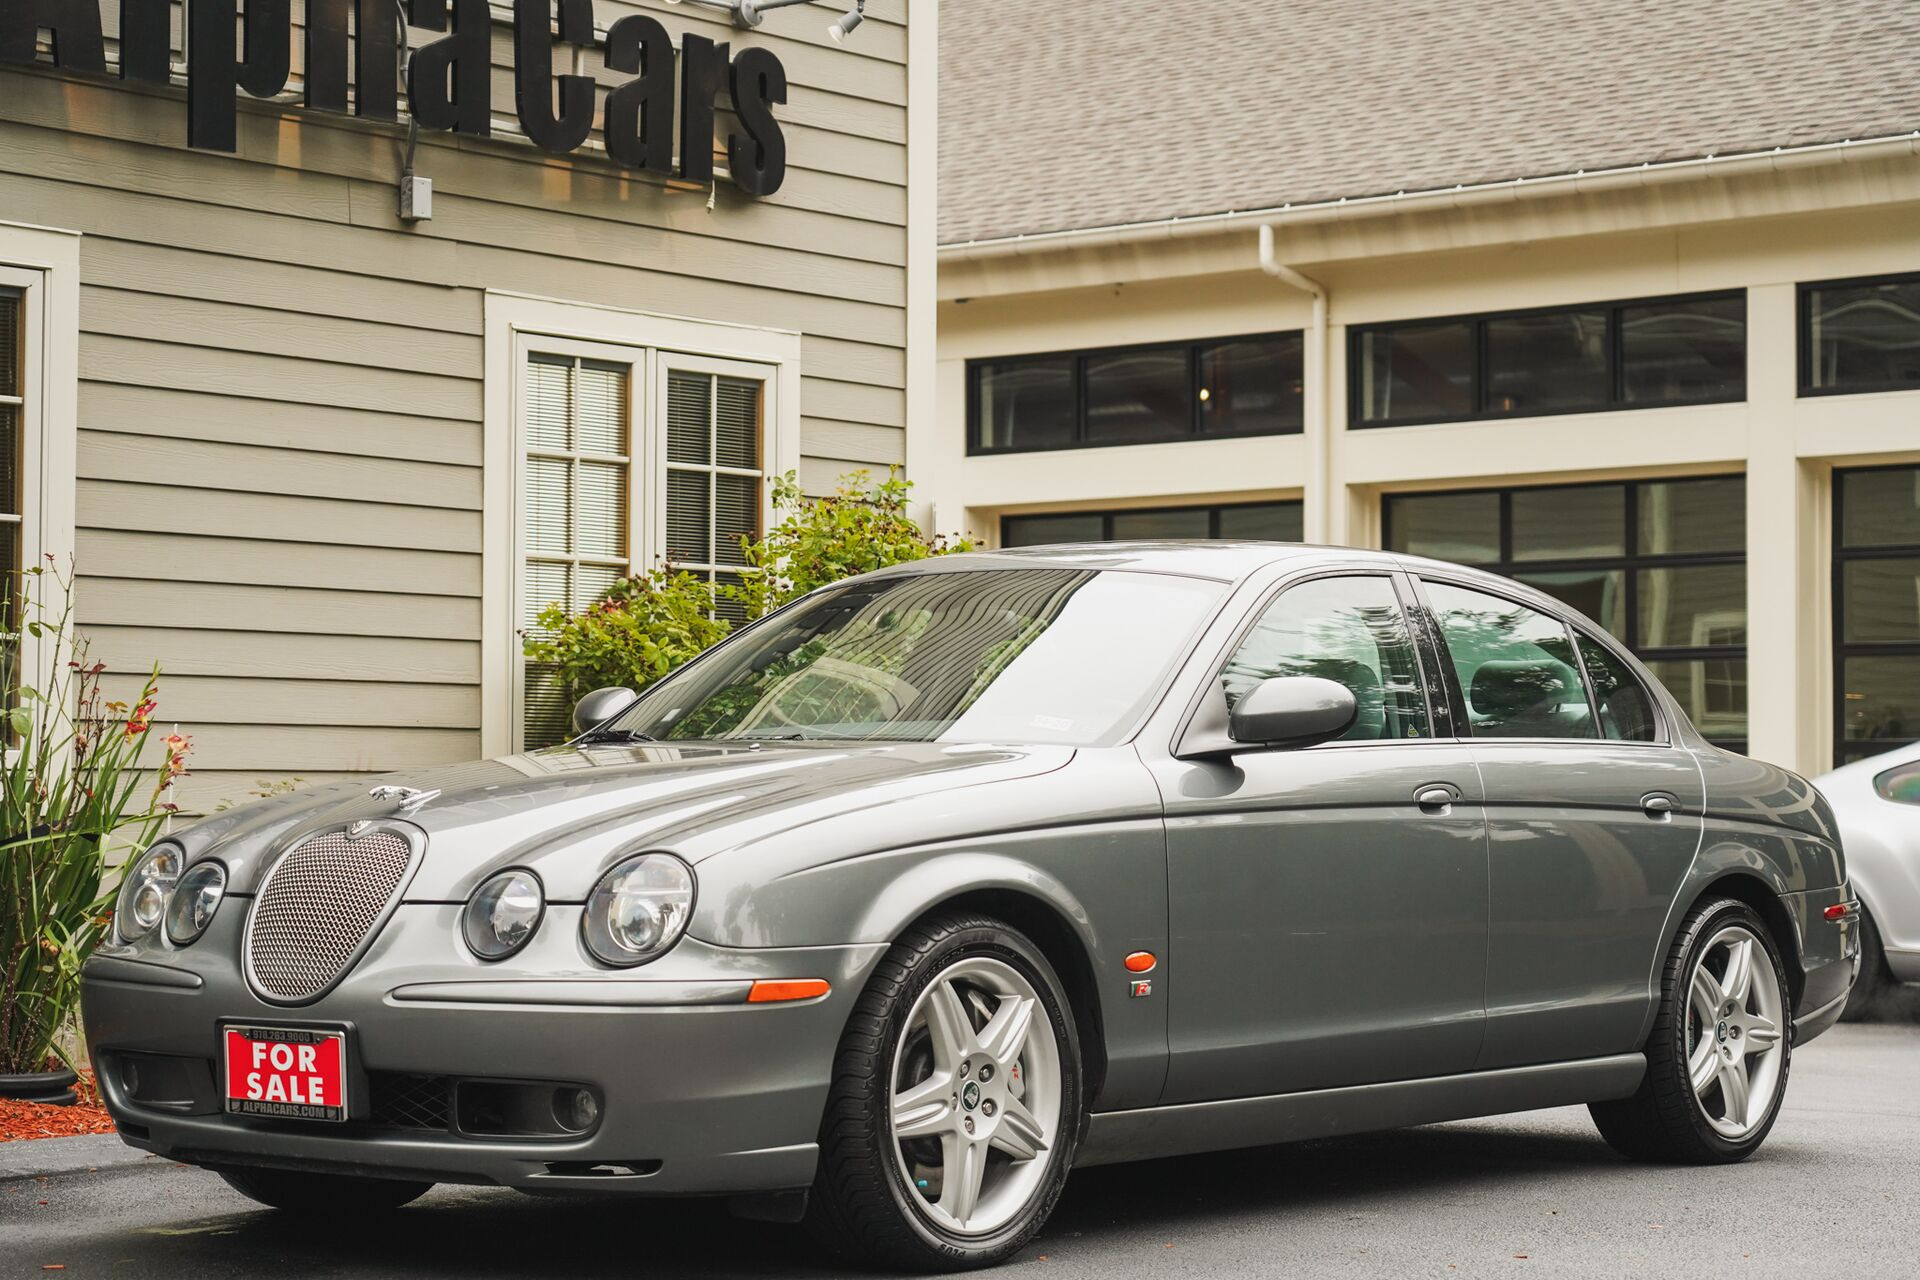 2003 Jaguar S-TYPE R Supercharged